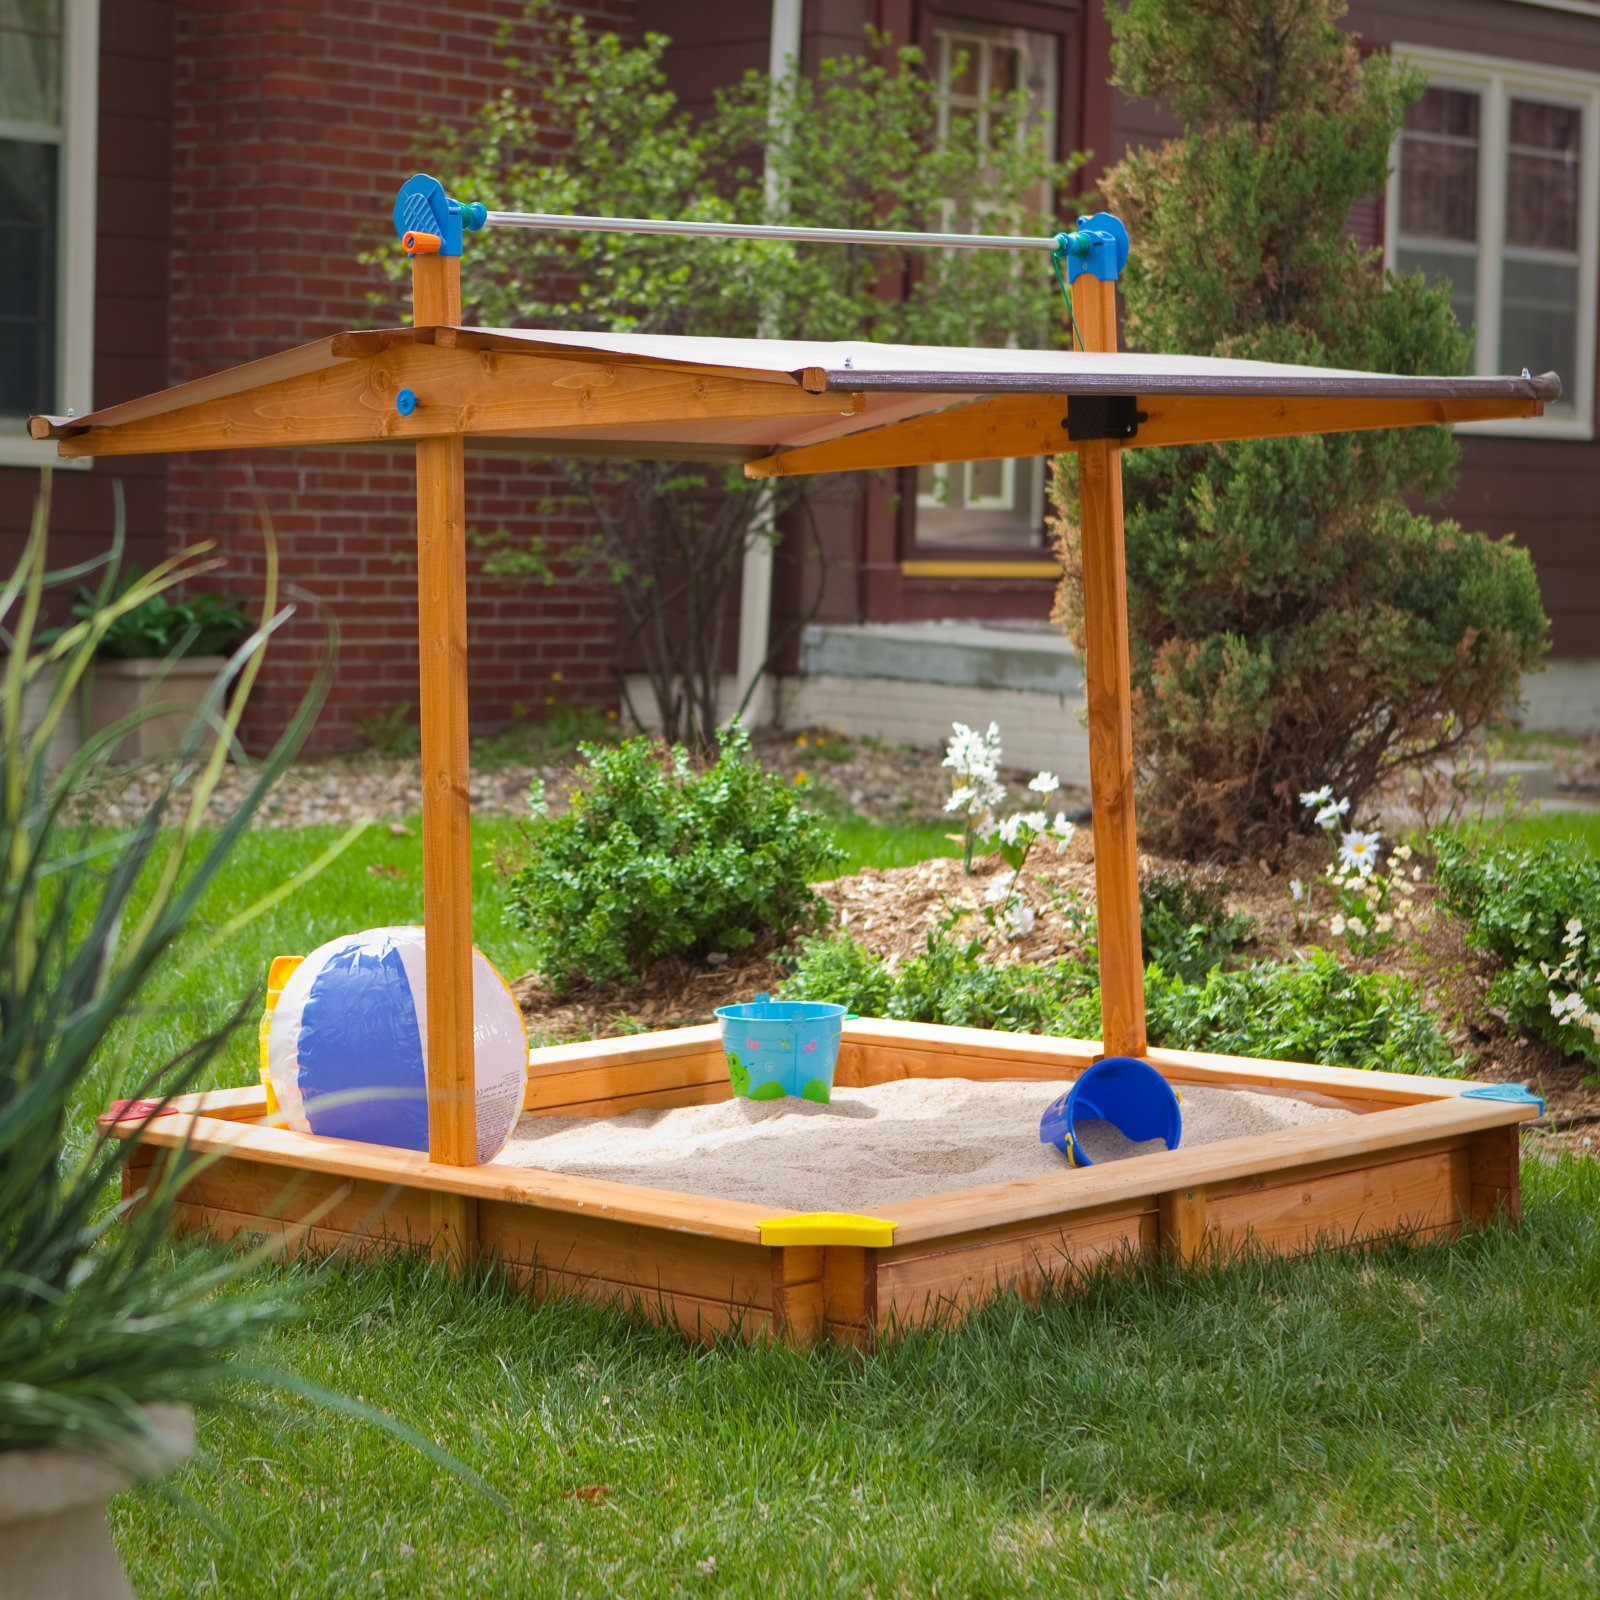 Tierra-Derco Large Covered Wooden Sandbox by Magic Cabin